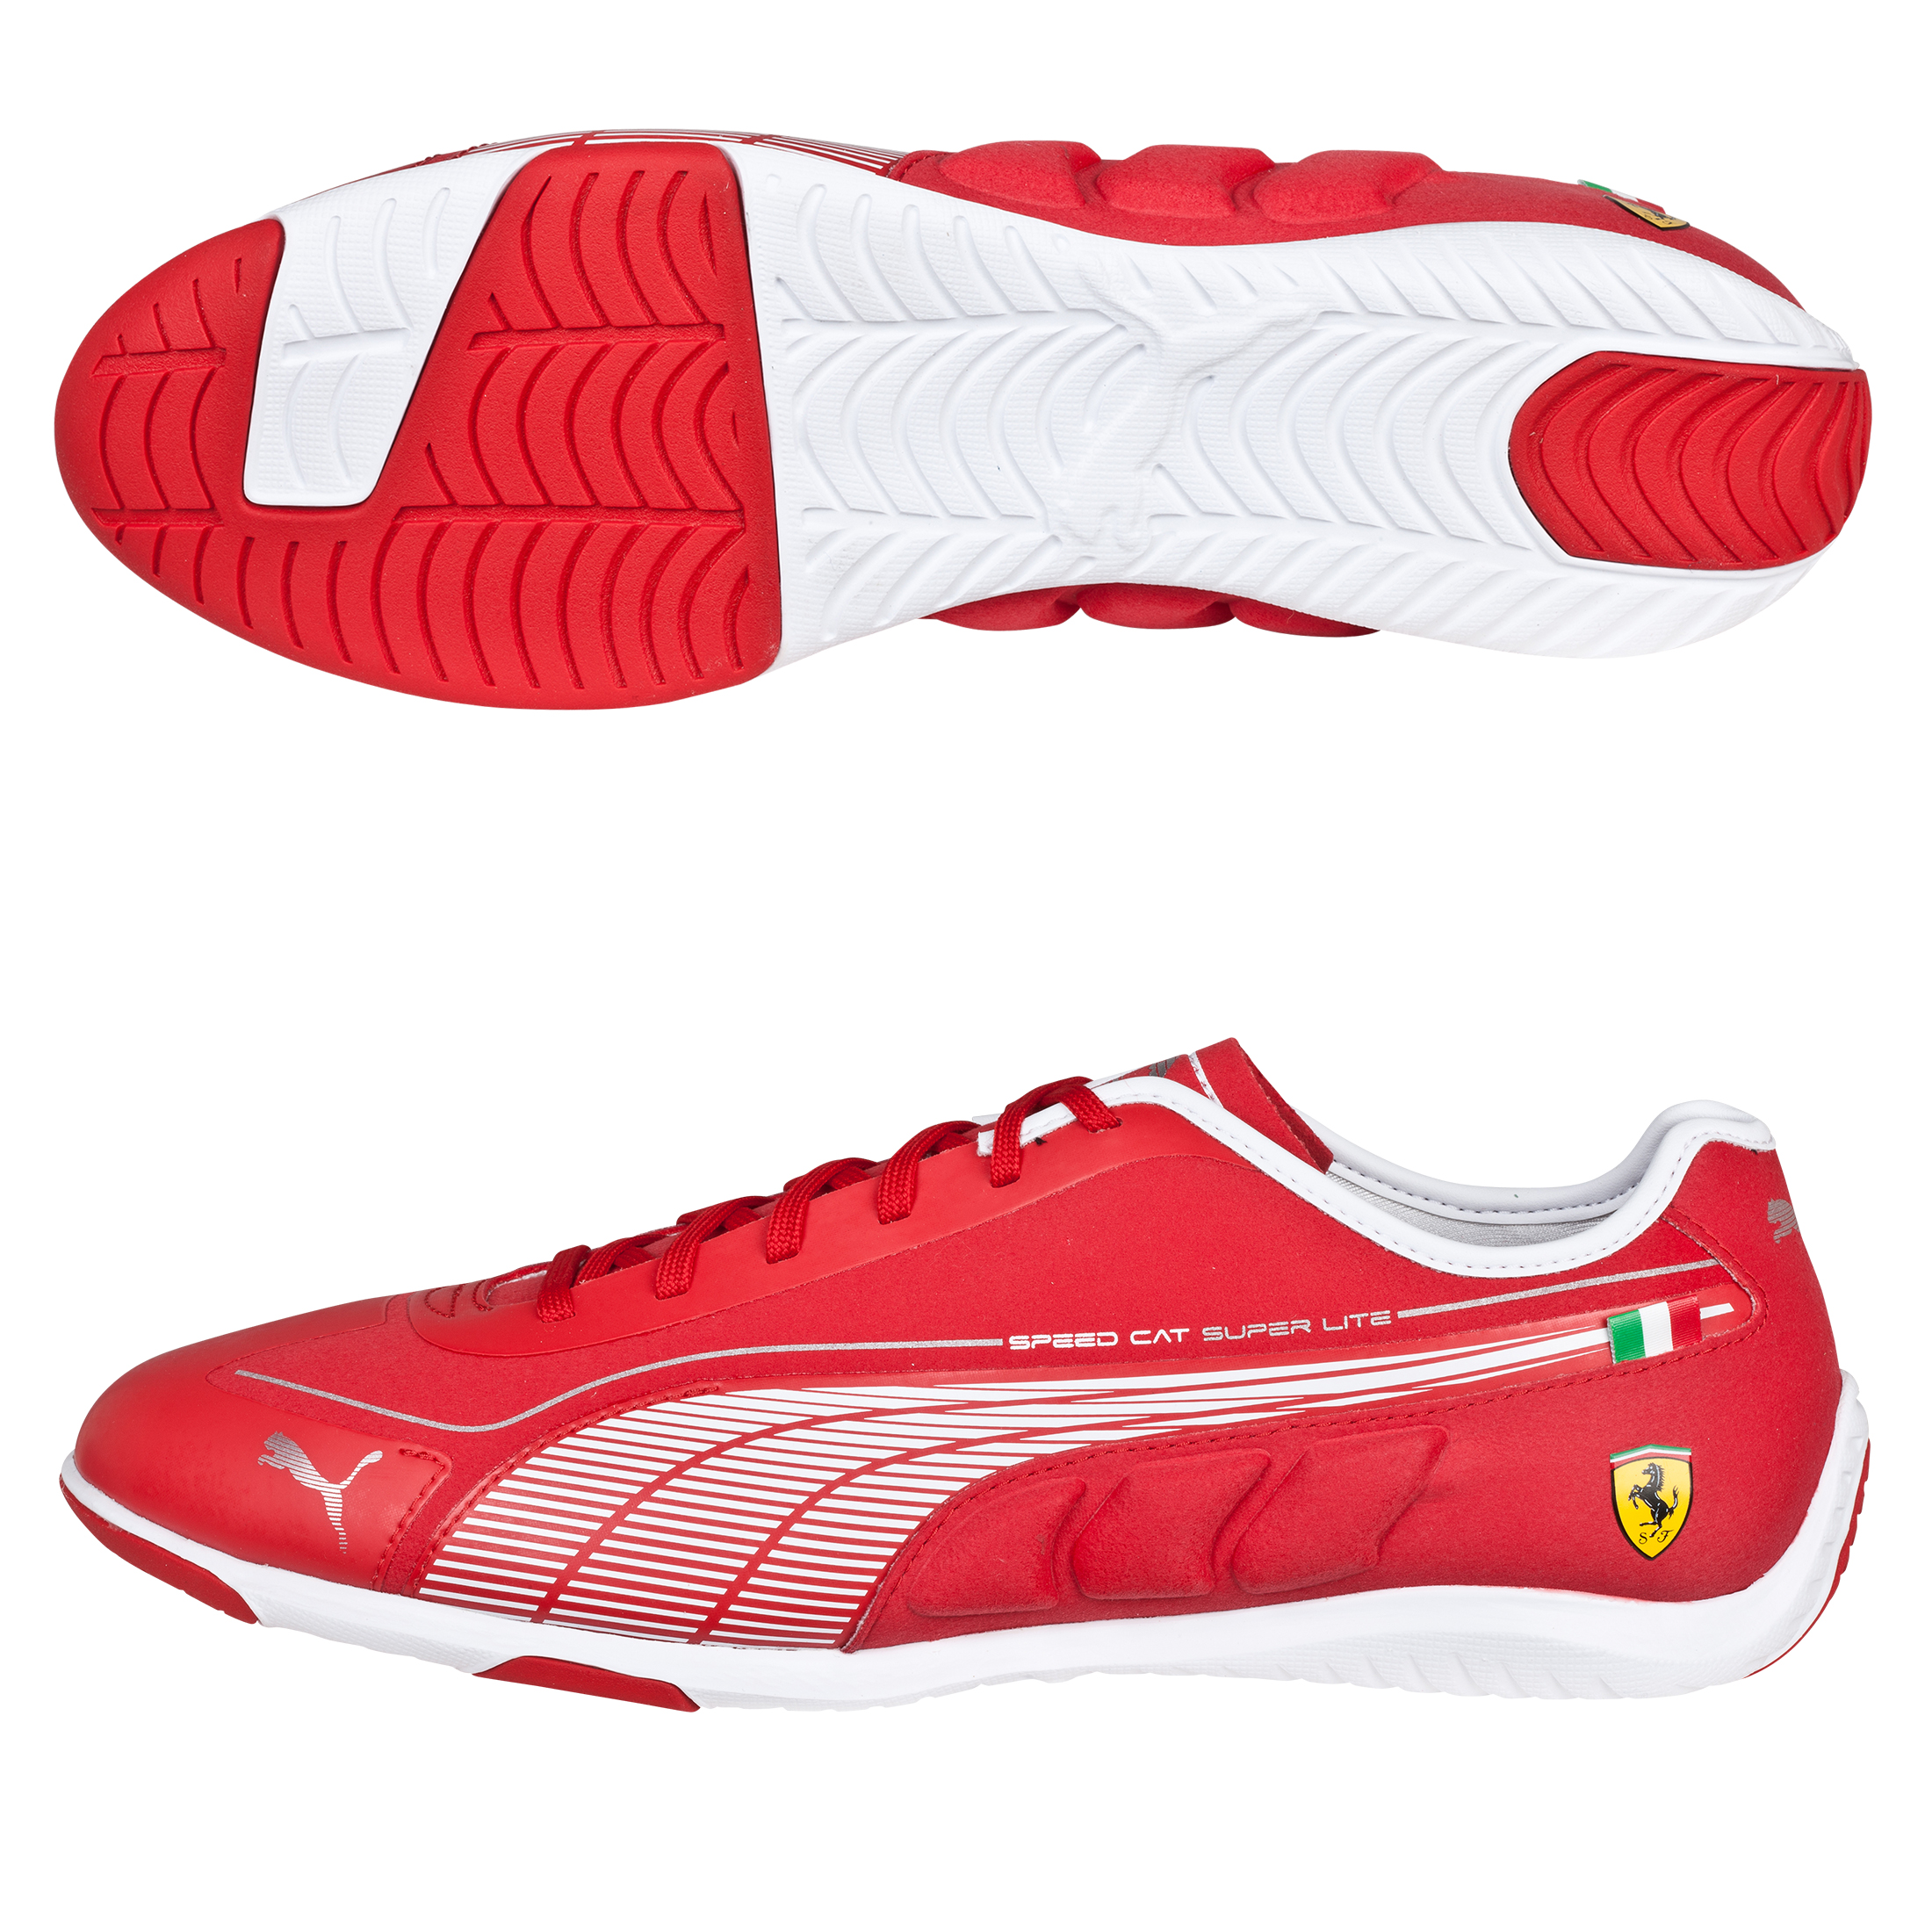 Scuderia Ferrari Scuderia Speed Cat Super Lite Low - Rosso Corsa/White